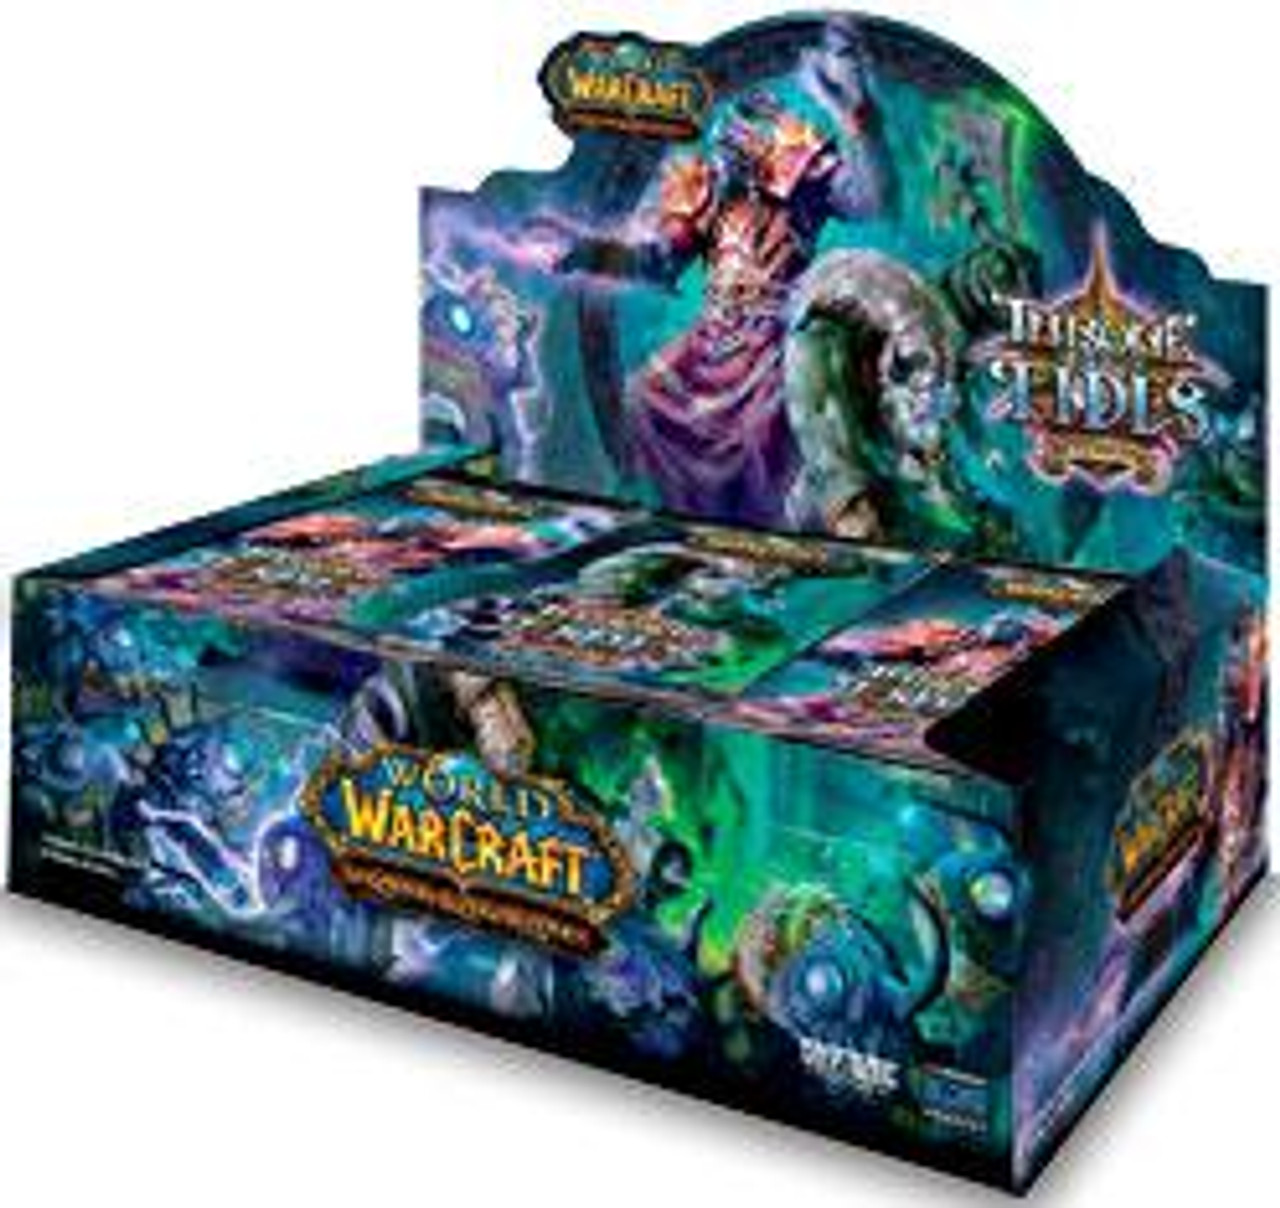 World of Warcraft Trading Card Game Throne of the Tides Booster Box [36 Packs]